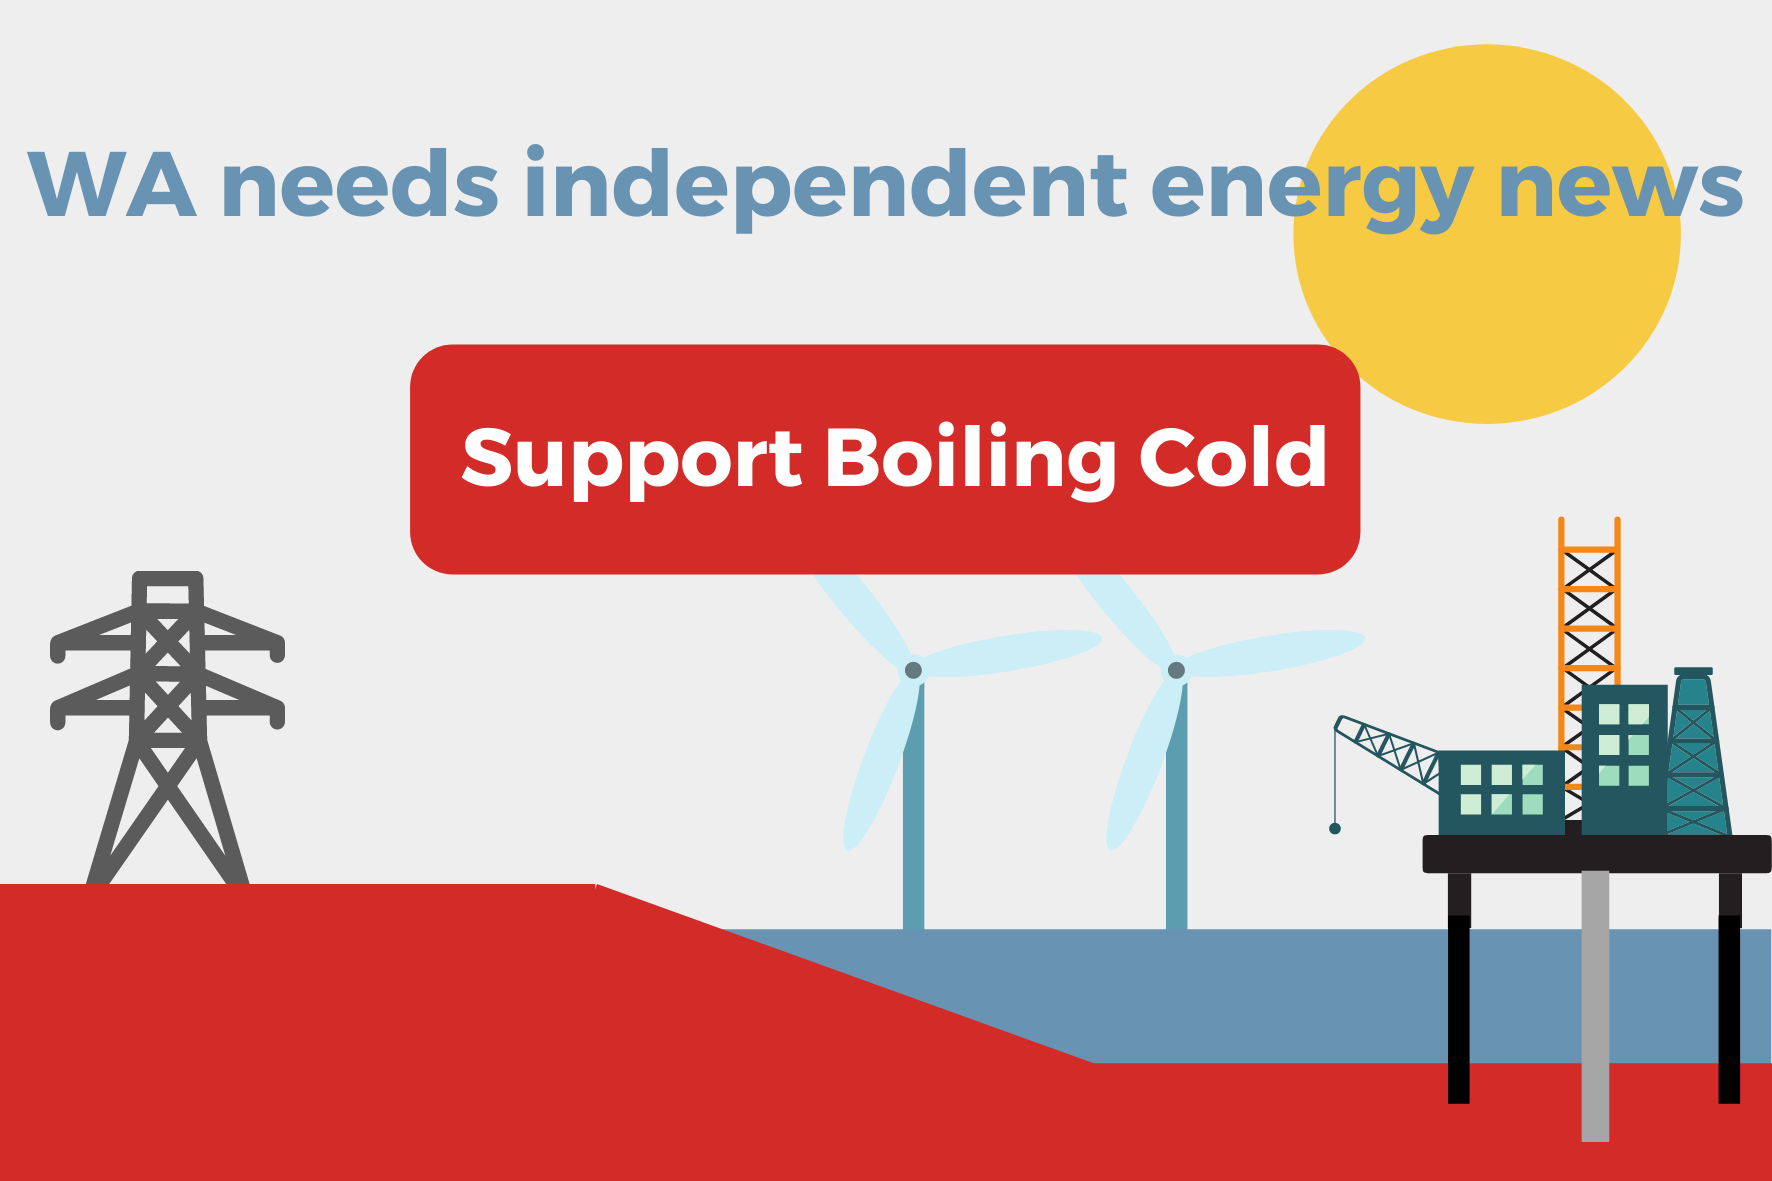 Need independent energy and climate news? Support Boilng Cold. It's a win win.